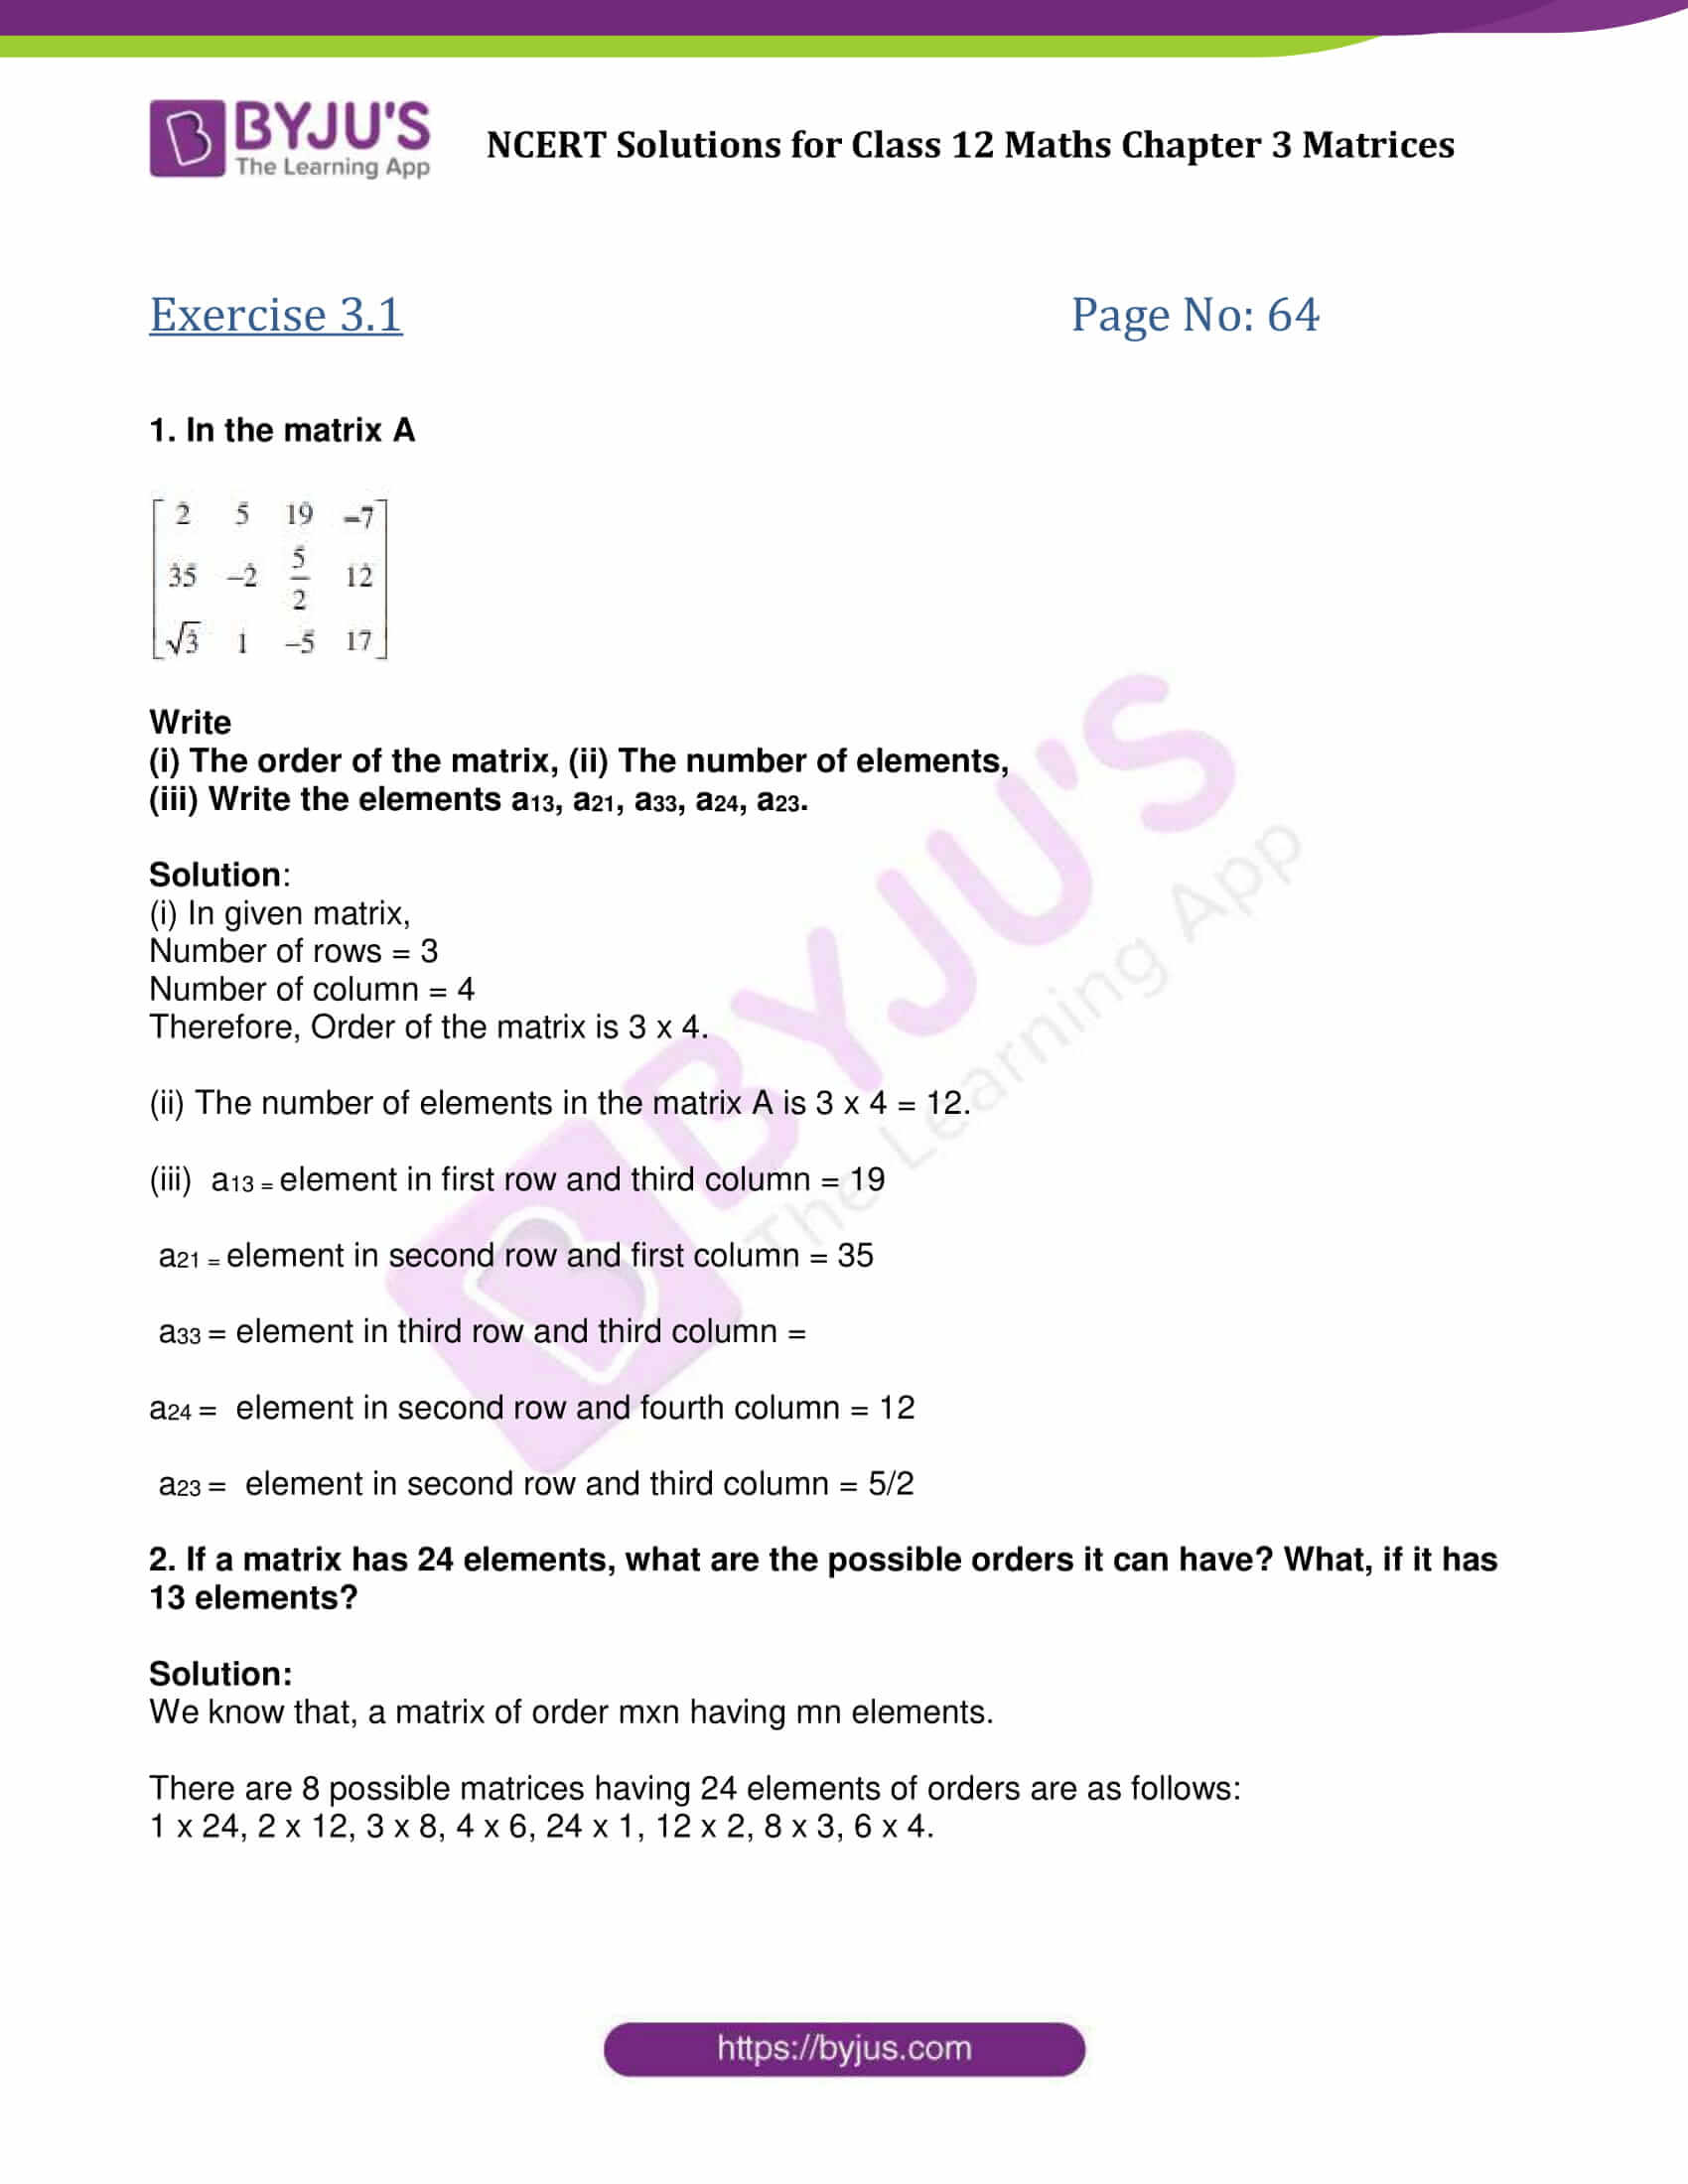 NCERT Solutions Class 12 Maths Chapter 3 Matrices - Free